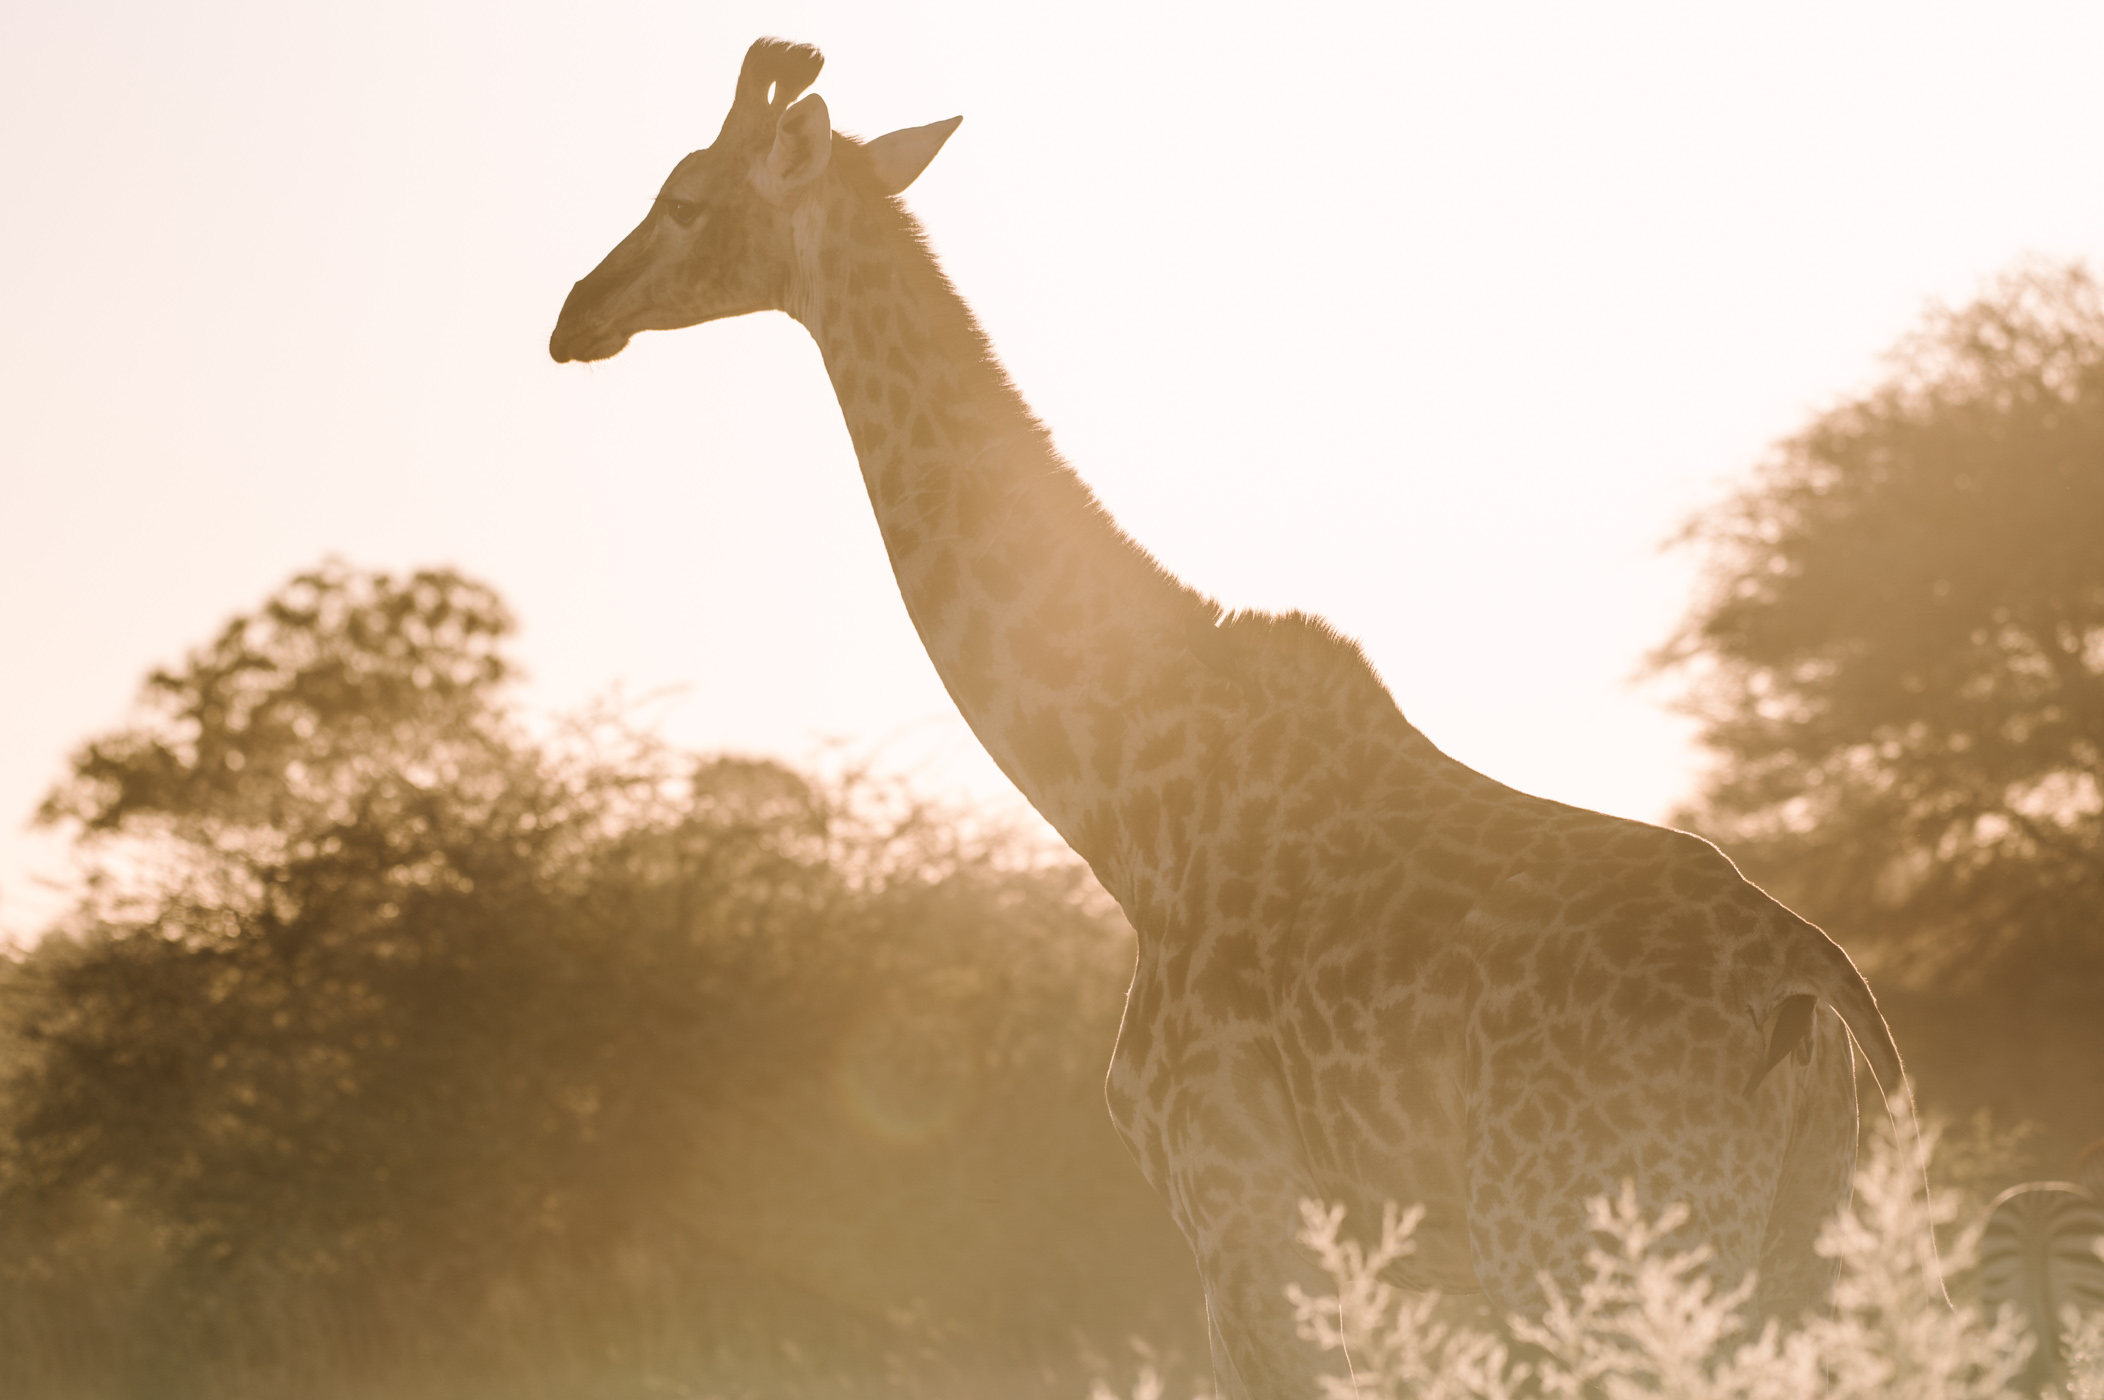 A giraffe in the Okavango Delta in Botswana